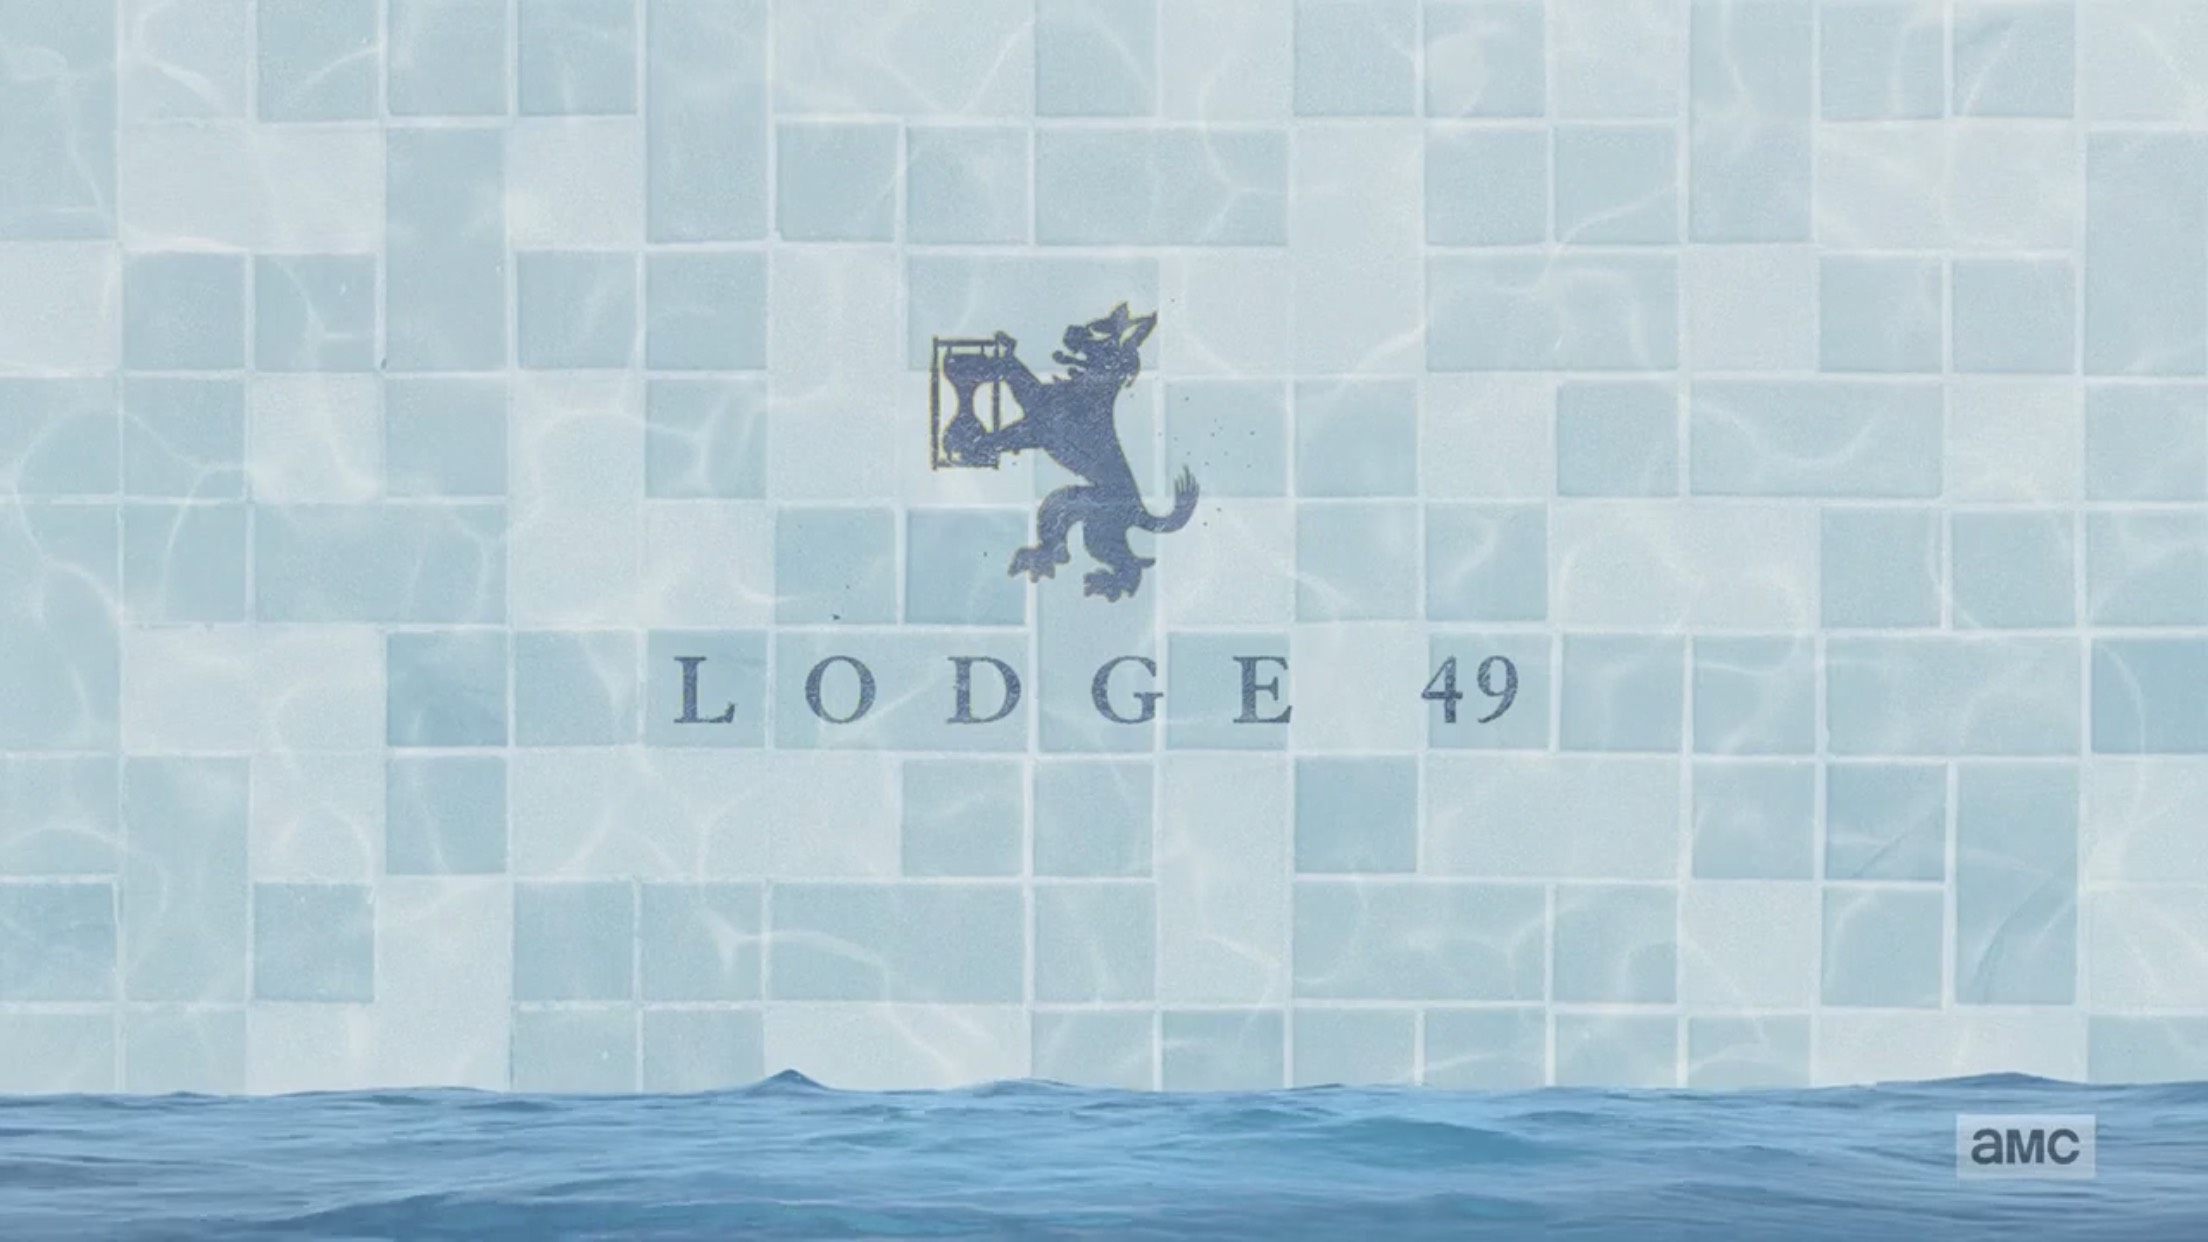 The Debts of Lodge 49